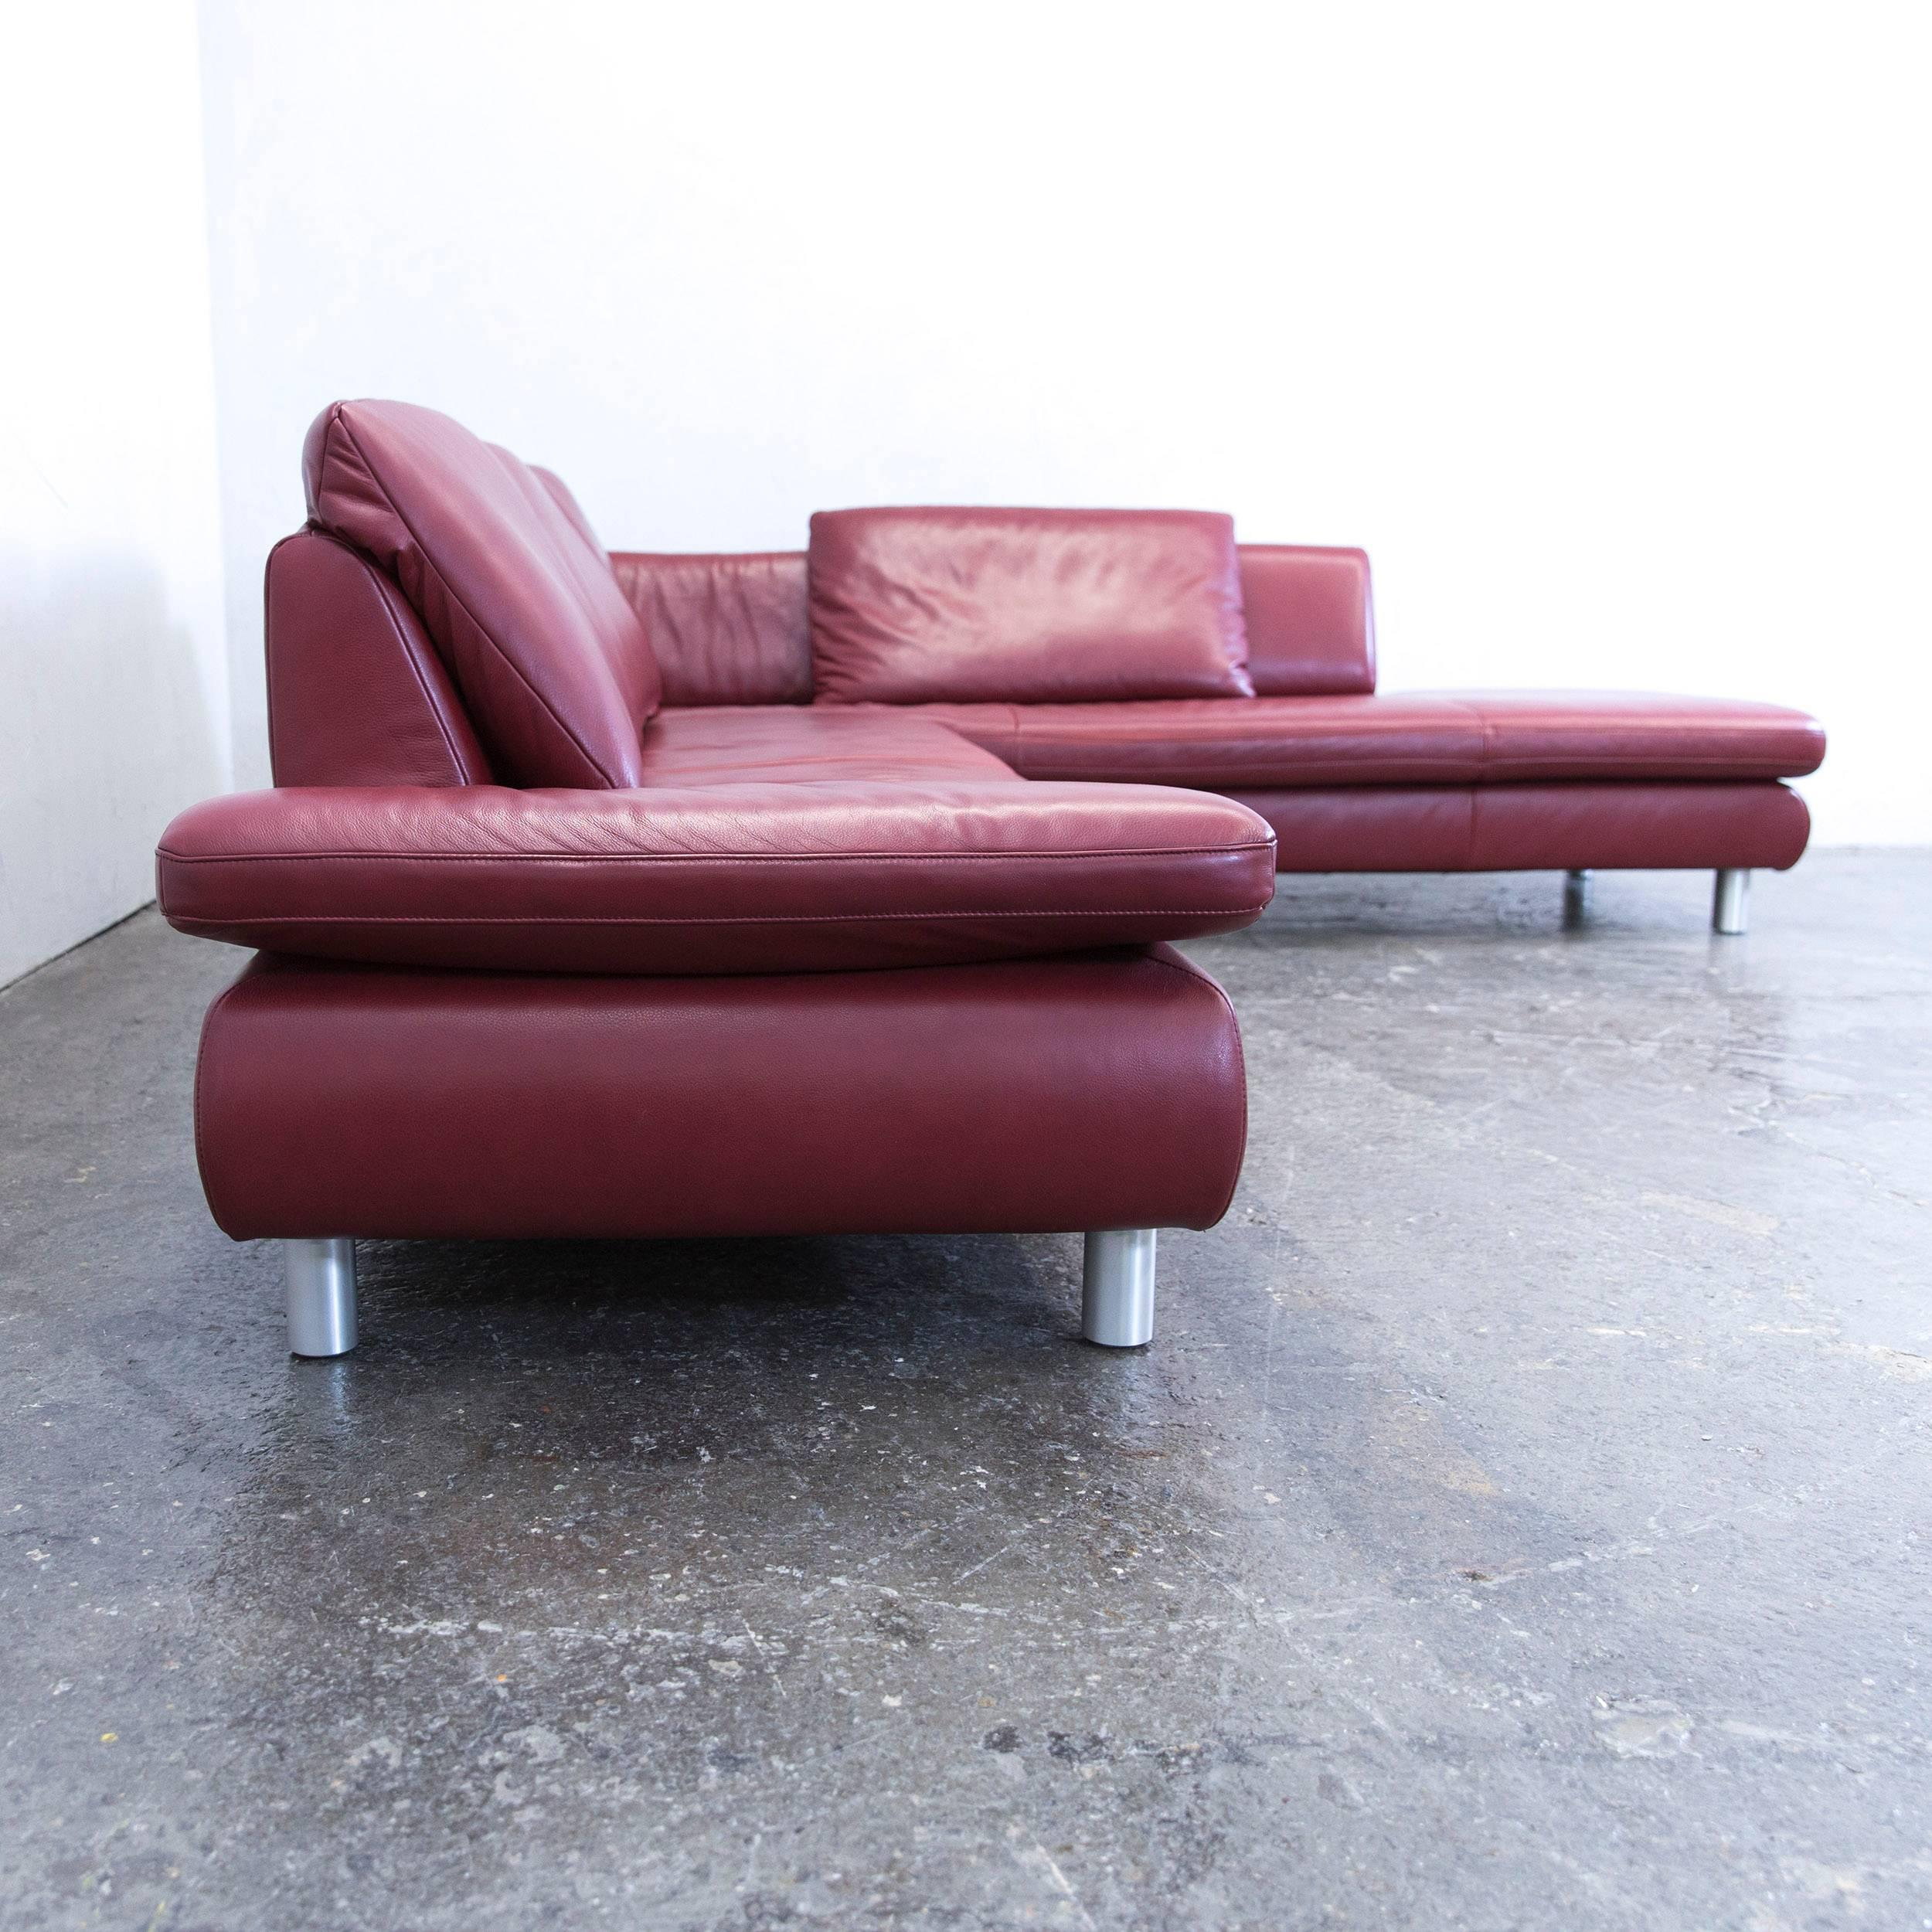 Koinor Volare Leather Corner Sofa Red Function Couch Modern At 1stdibs